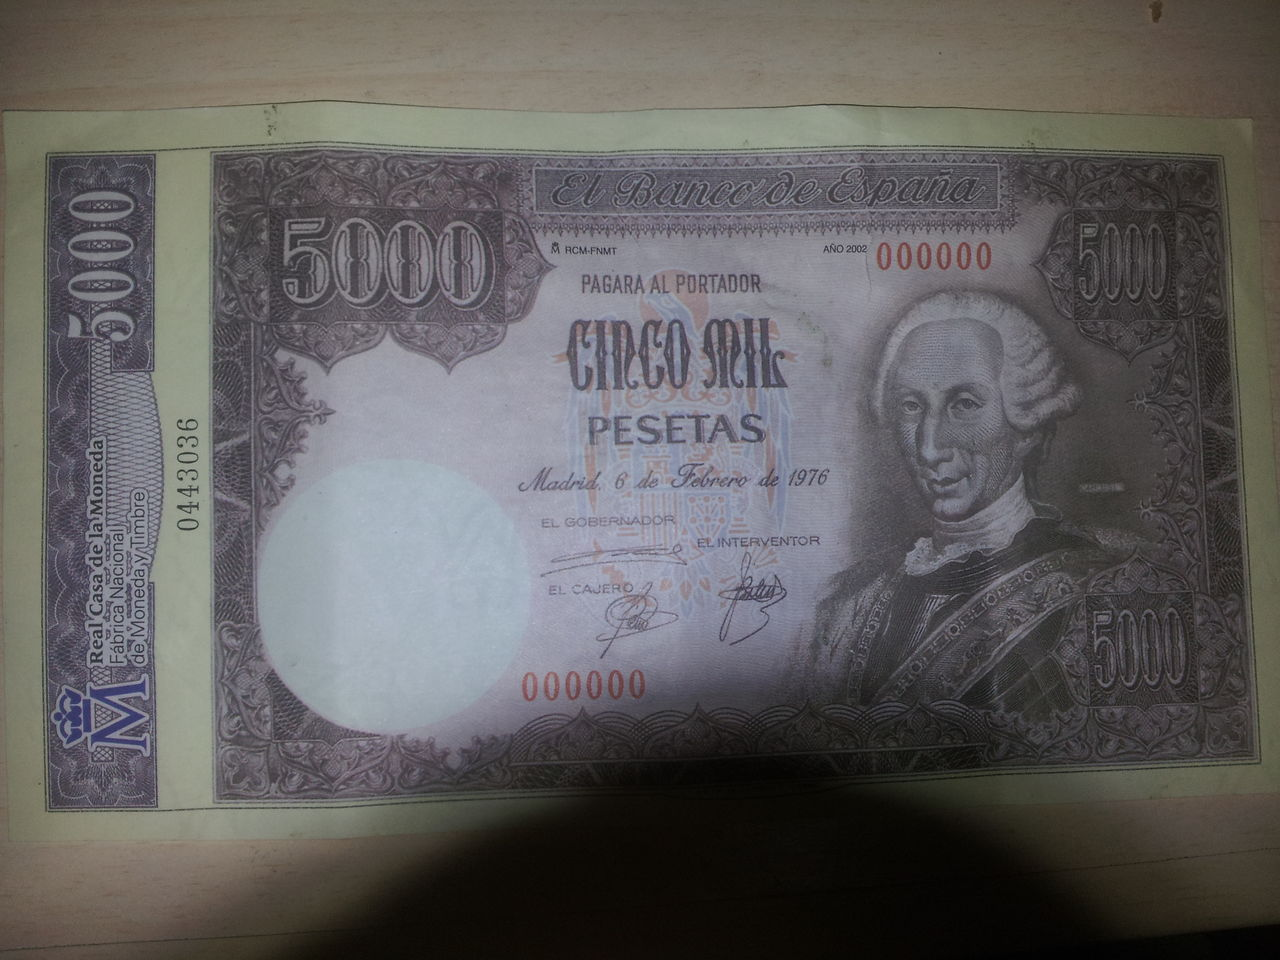 Billete 5000 pesetas 1976 2013_08_28_23_13_55